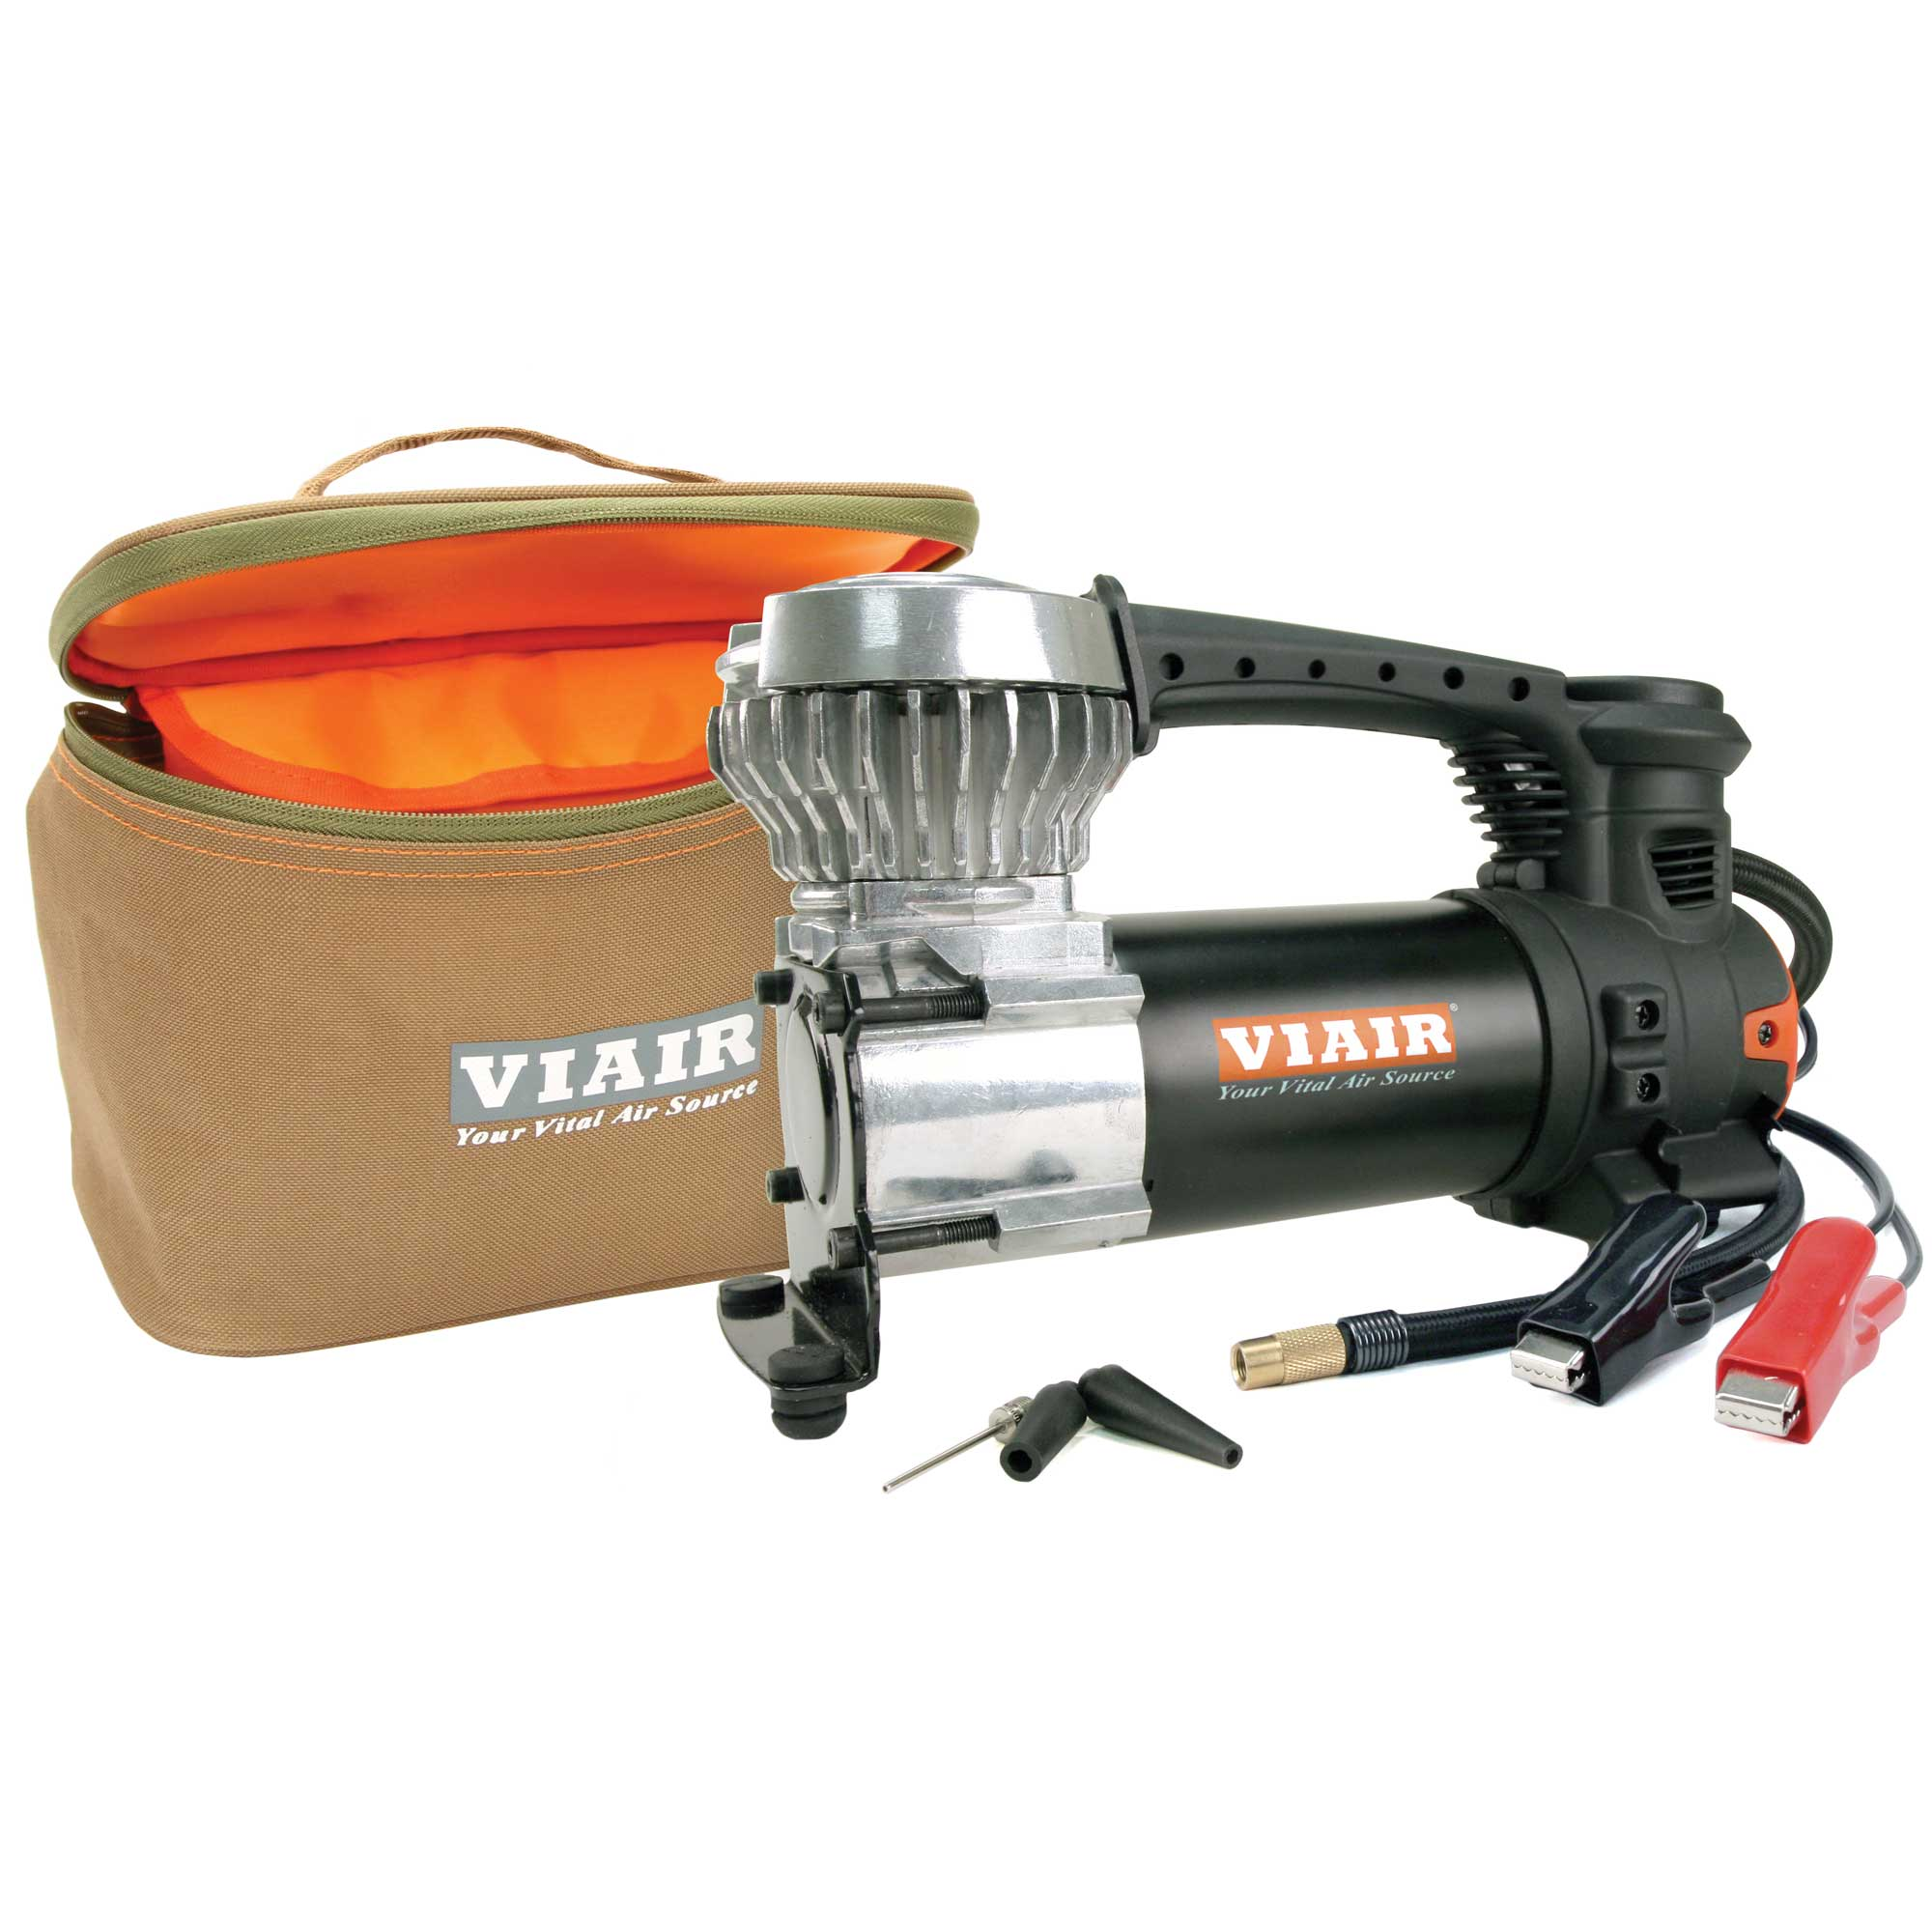 VIAIR 87P Portable Compressor